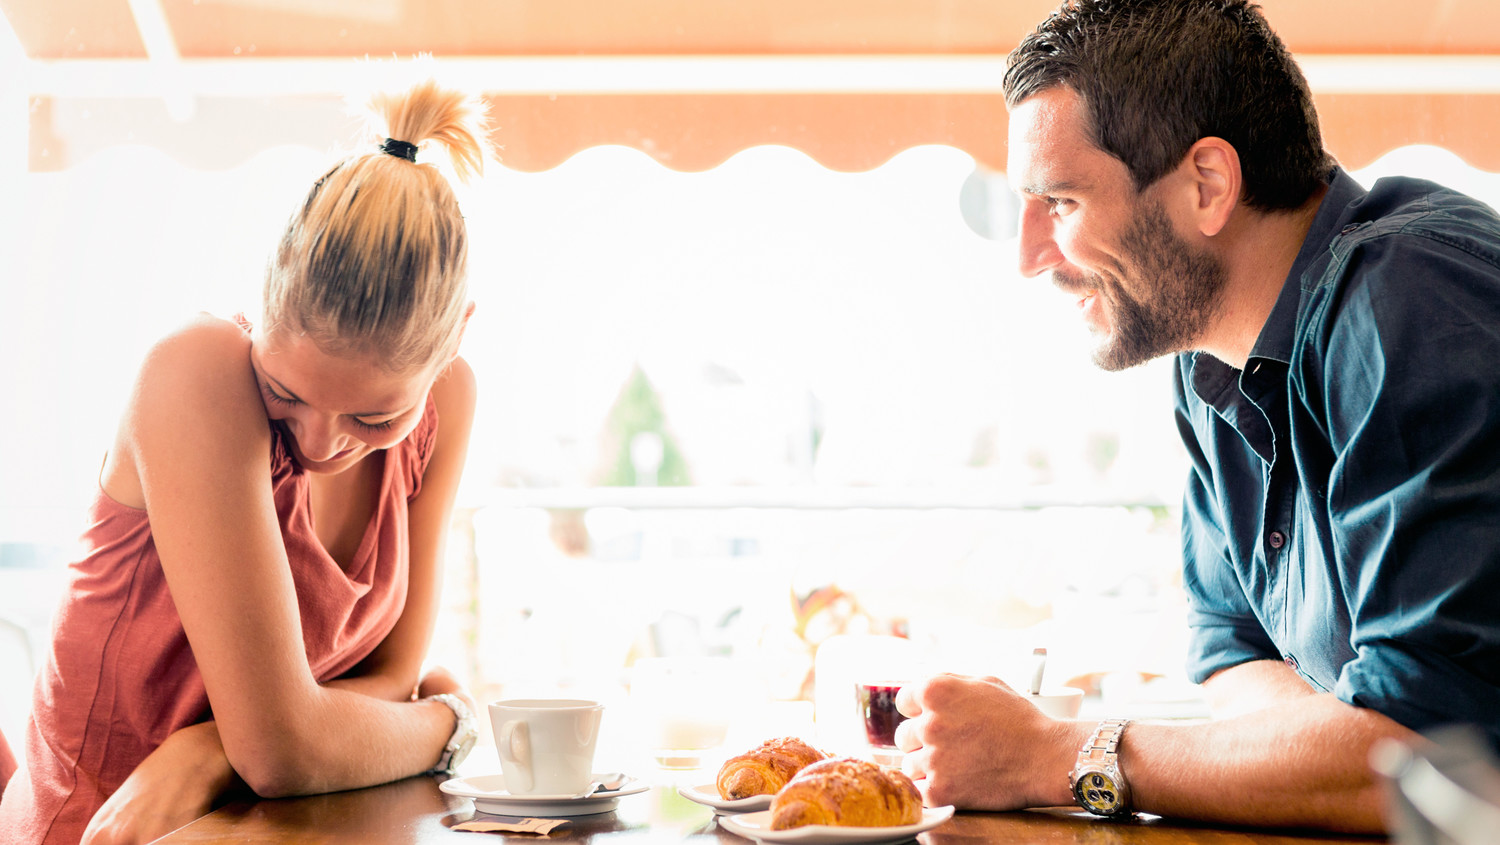 What you want to know about dating in your 30s